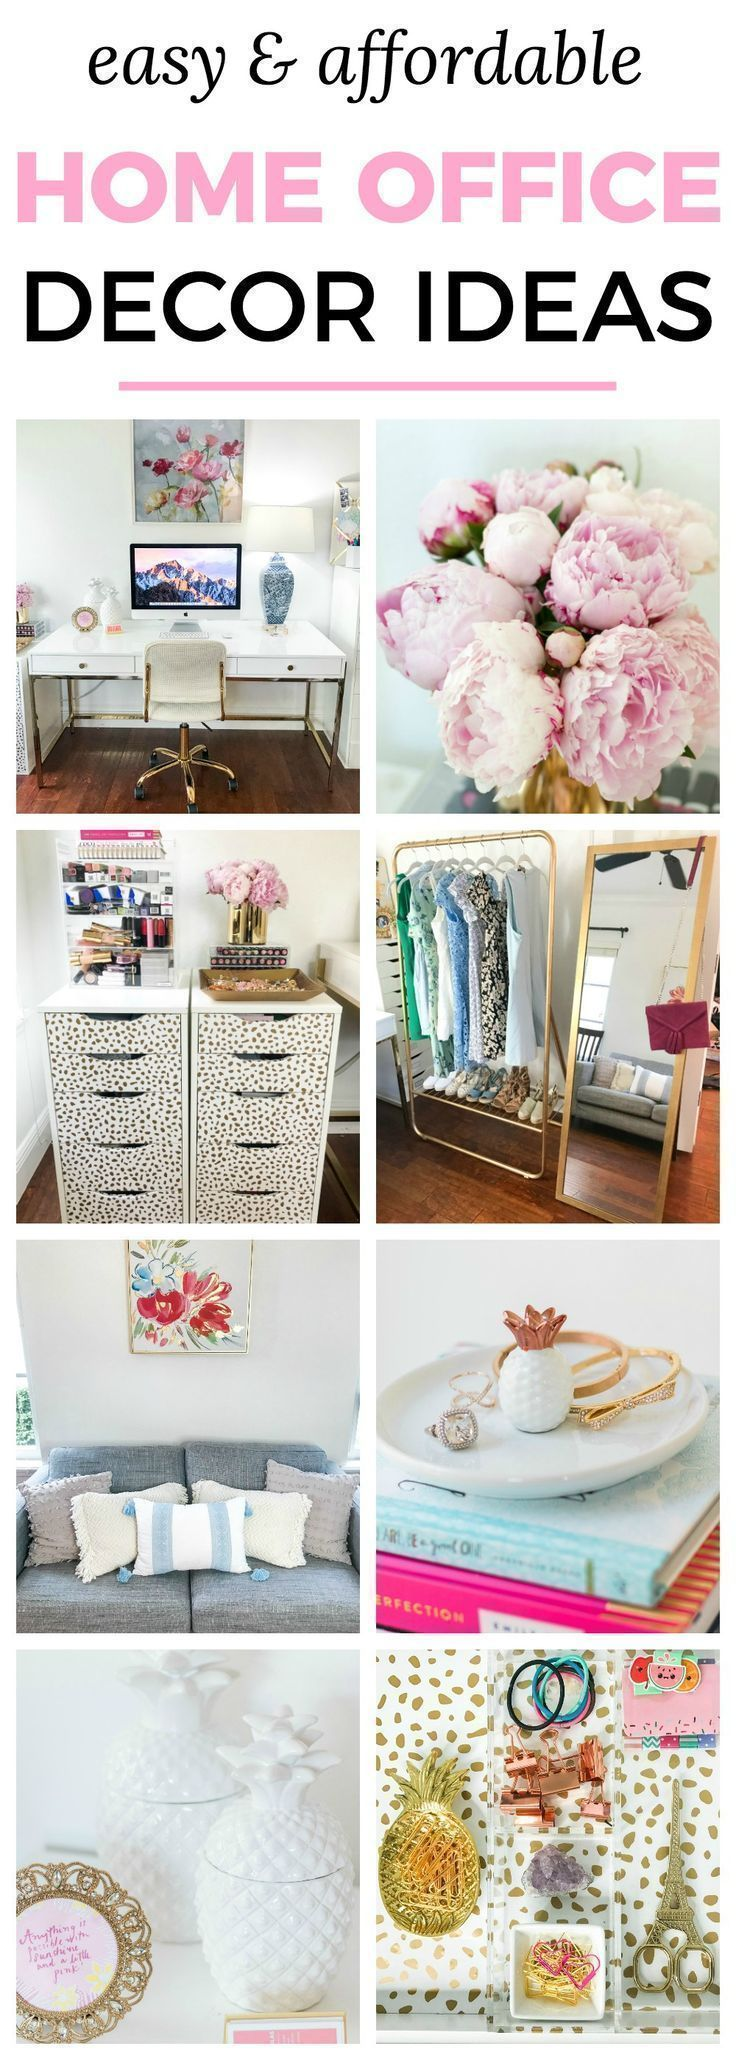 Easy & affordable home office decor ideas | Cute blogger home office ...